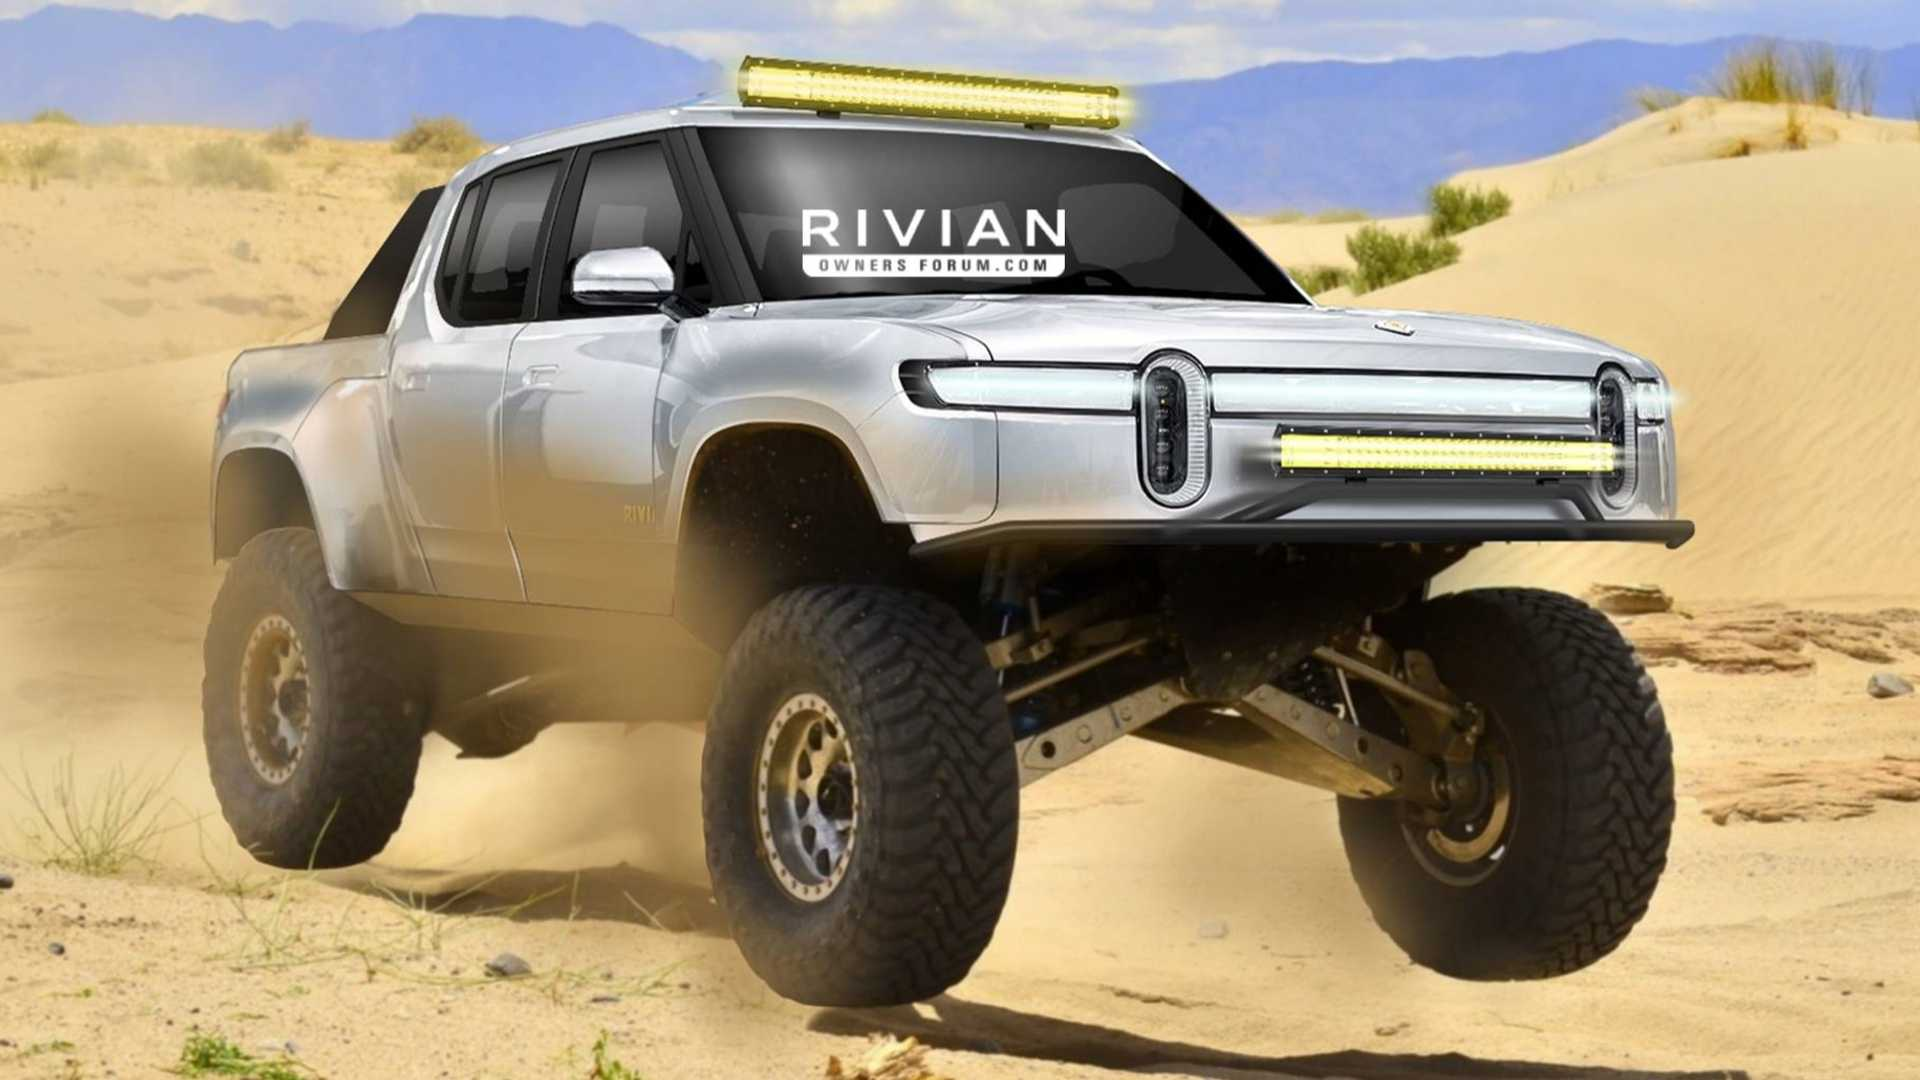 Rivian says it will soon unveil the sported-up variant of its all-electric pickup truck model, the R1T. The series will hit production soon primarily targeted at professional racing drivers – mainly those participating in desert endurance races, like the Baja 1000.